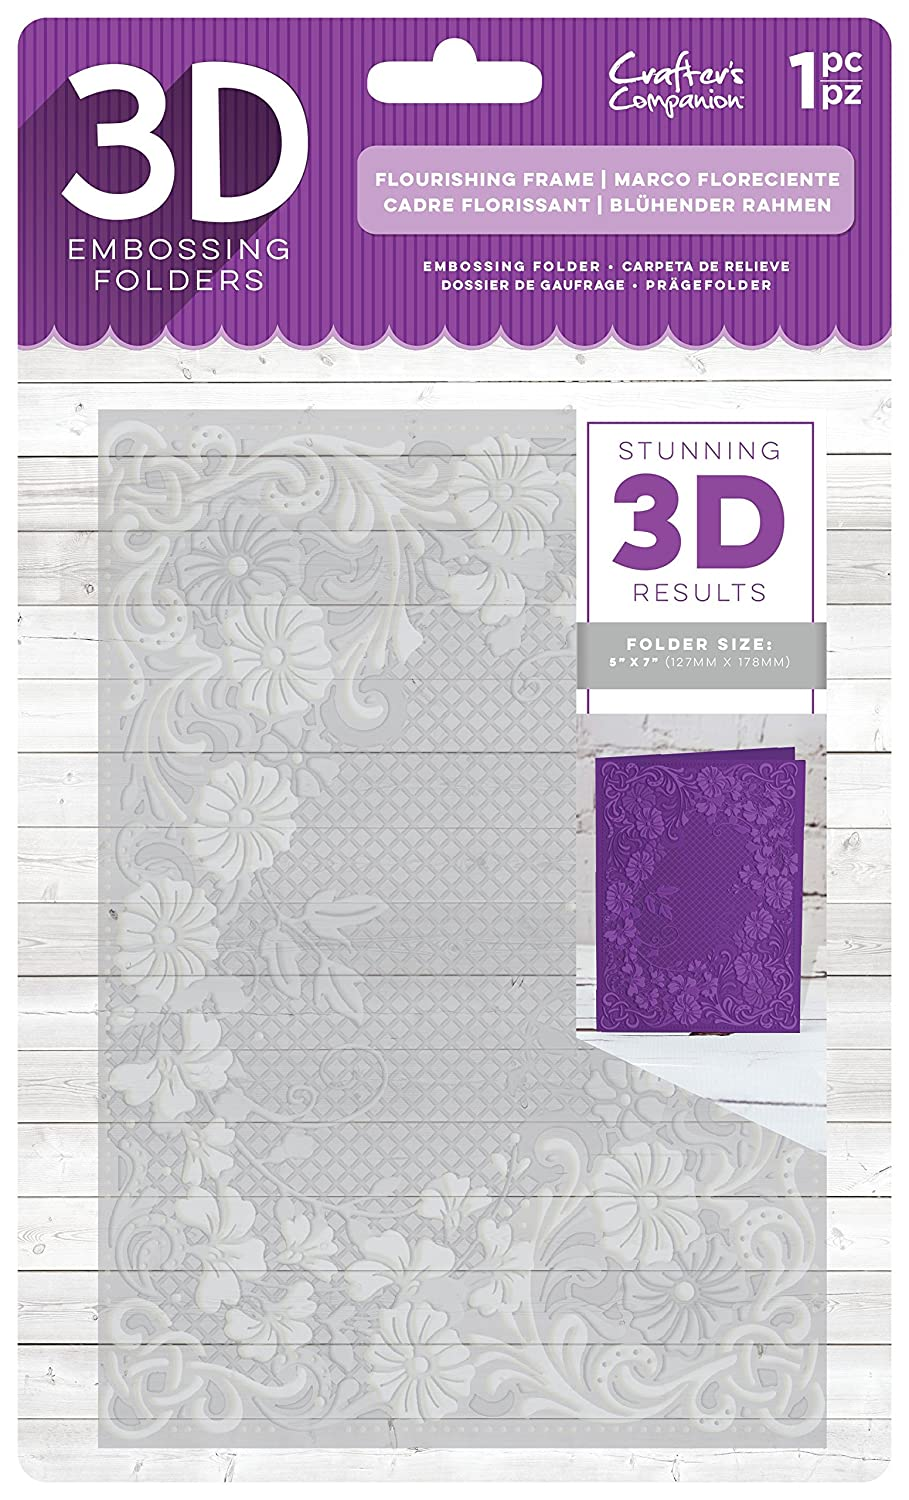 Die'sire EF5-3D-FLFR 3D Embossing Folder, Clear Crafter' s Companion